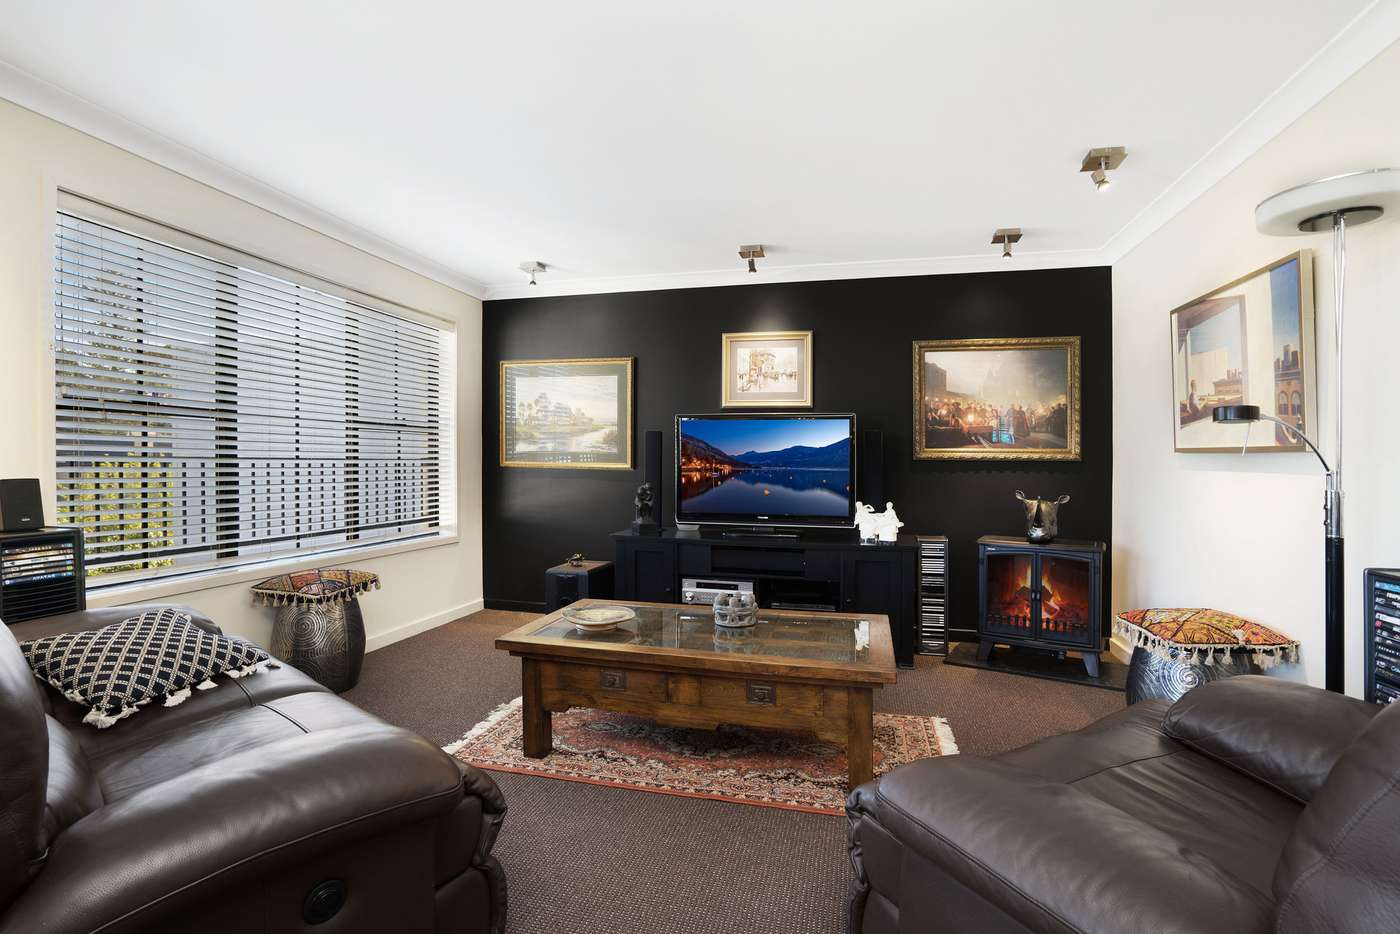 Main view of Homely apartment listing, 9/278 Darby Street, Cooks Hill NSW 2300